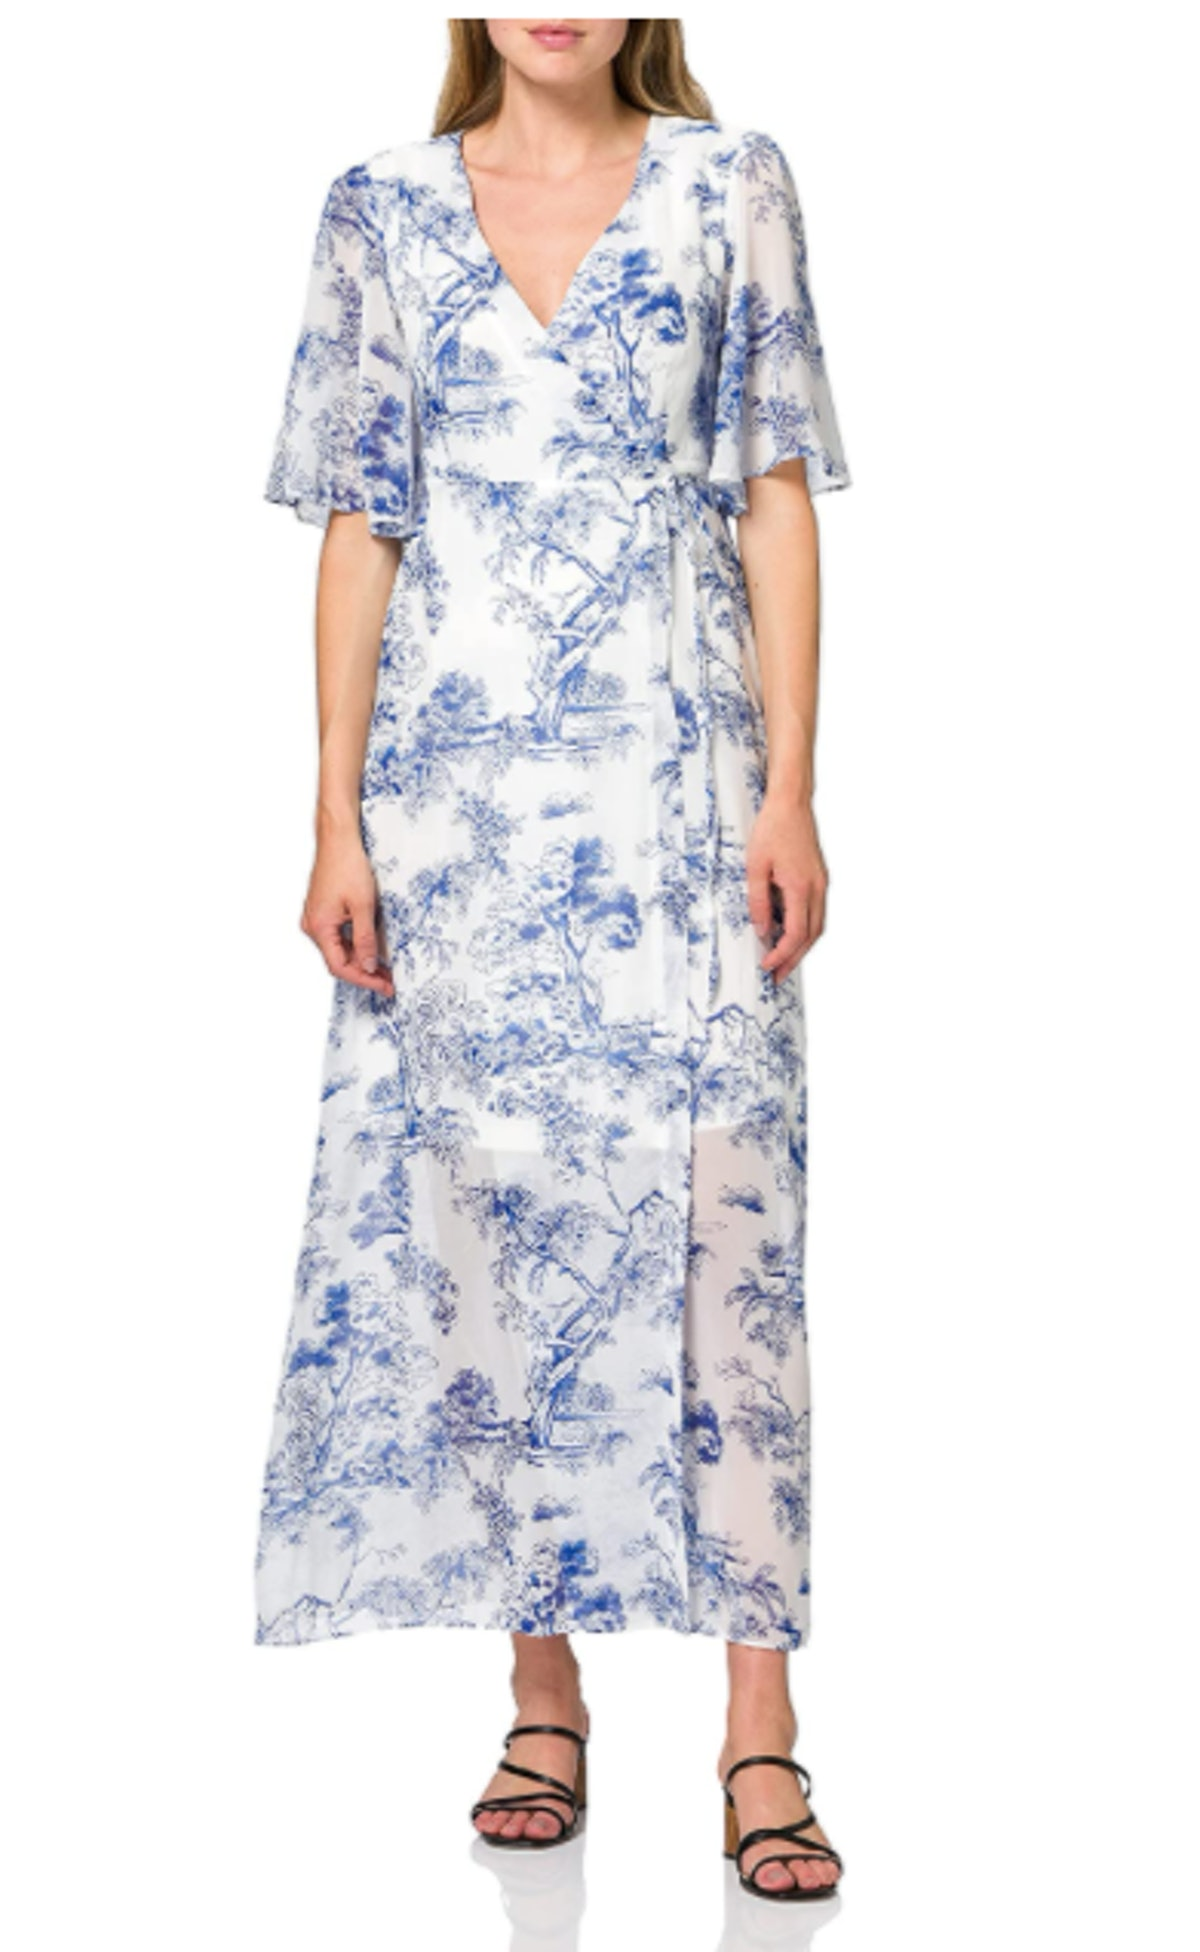 Truth & Fable Chiffon Wrap Dress With Bell Sleeves